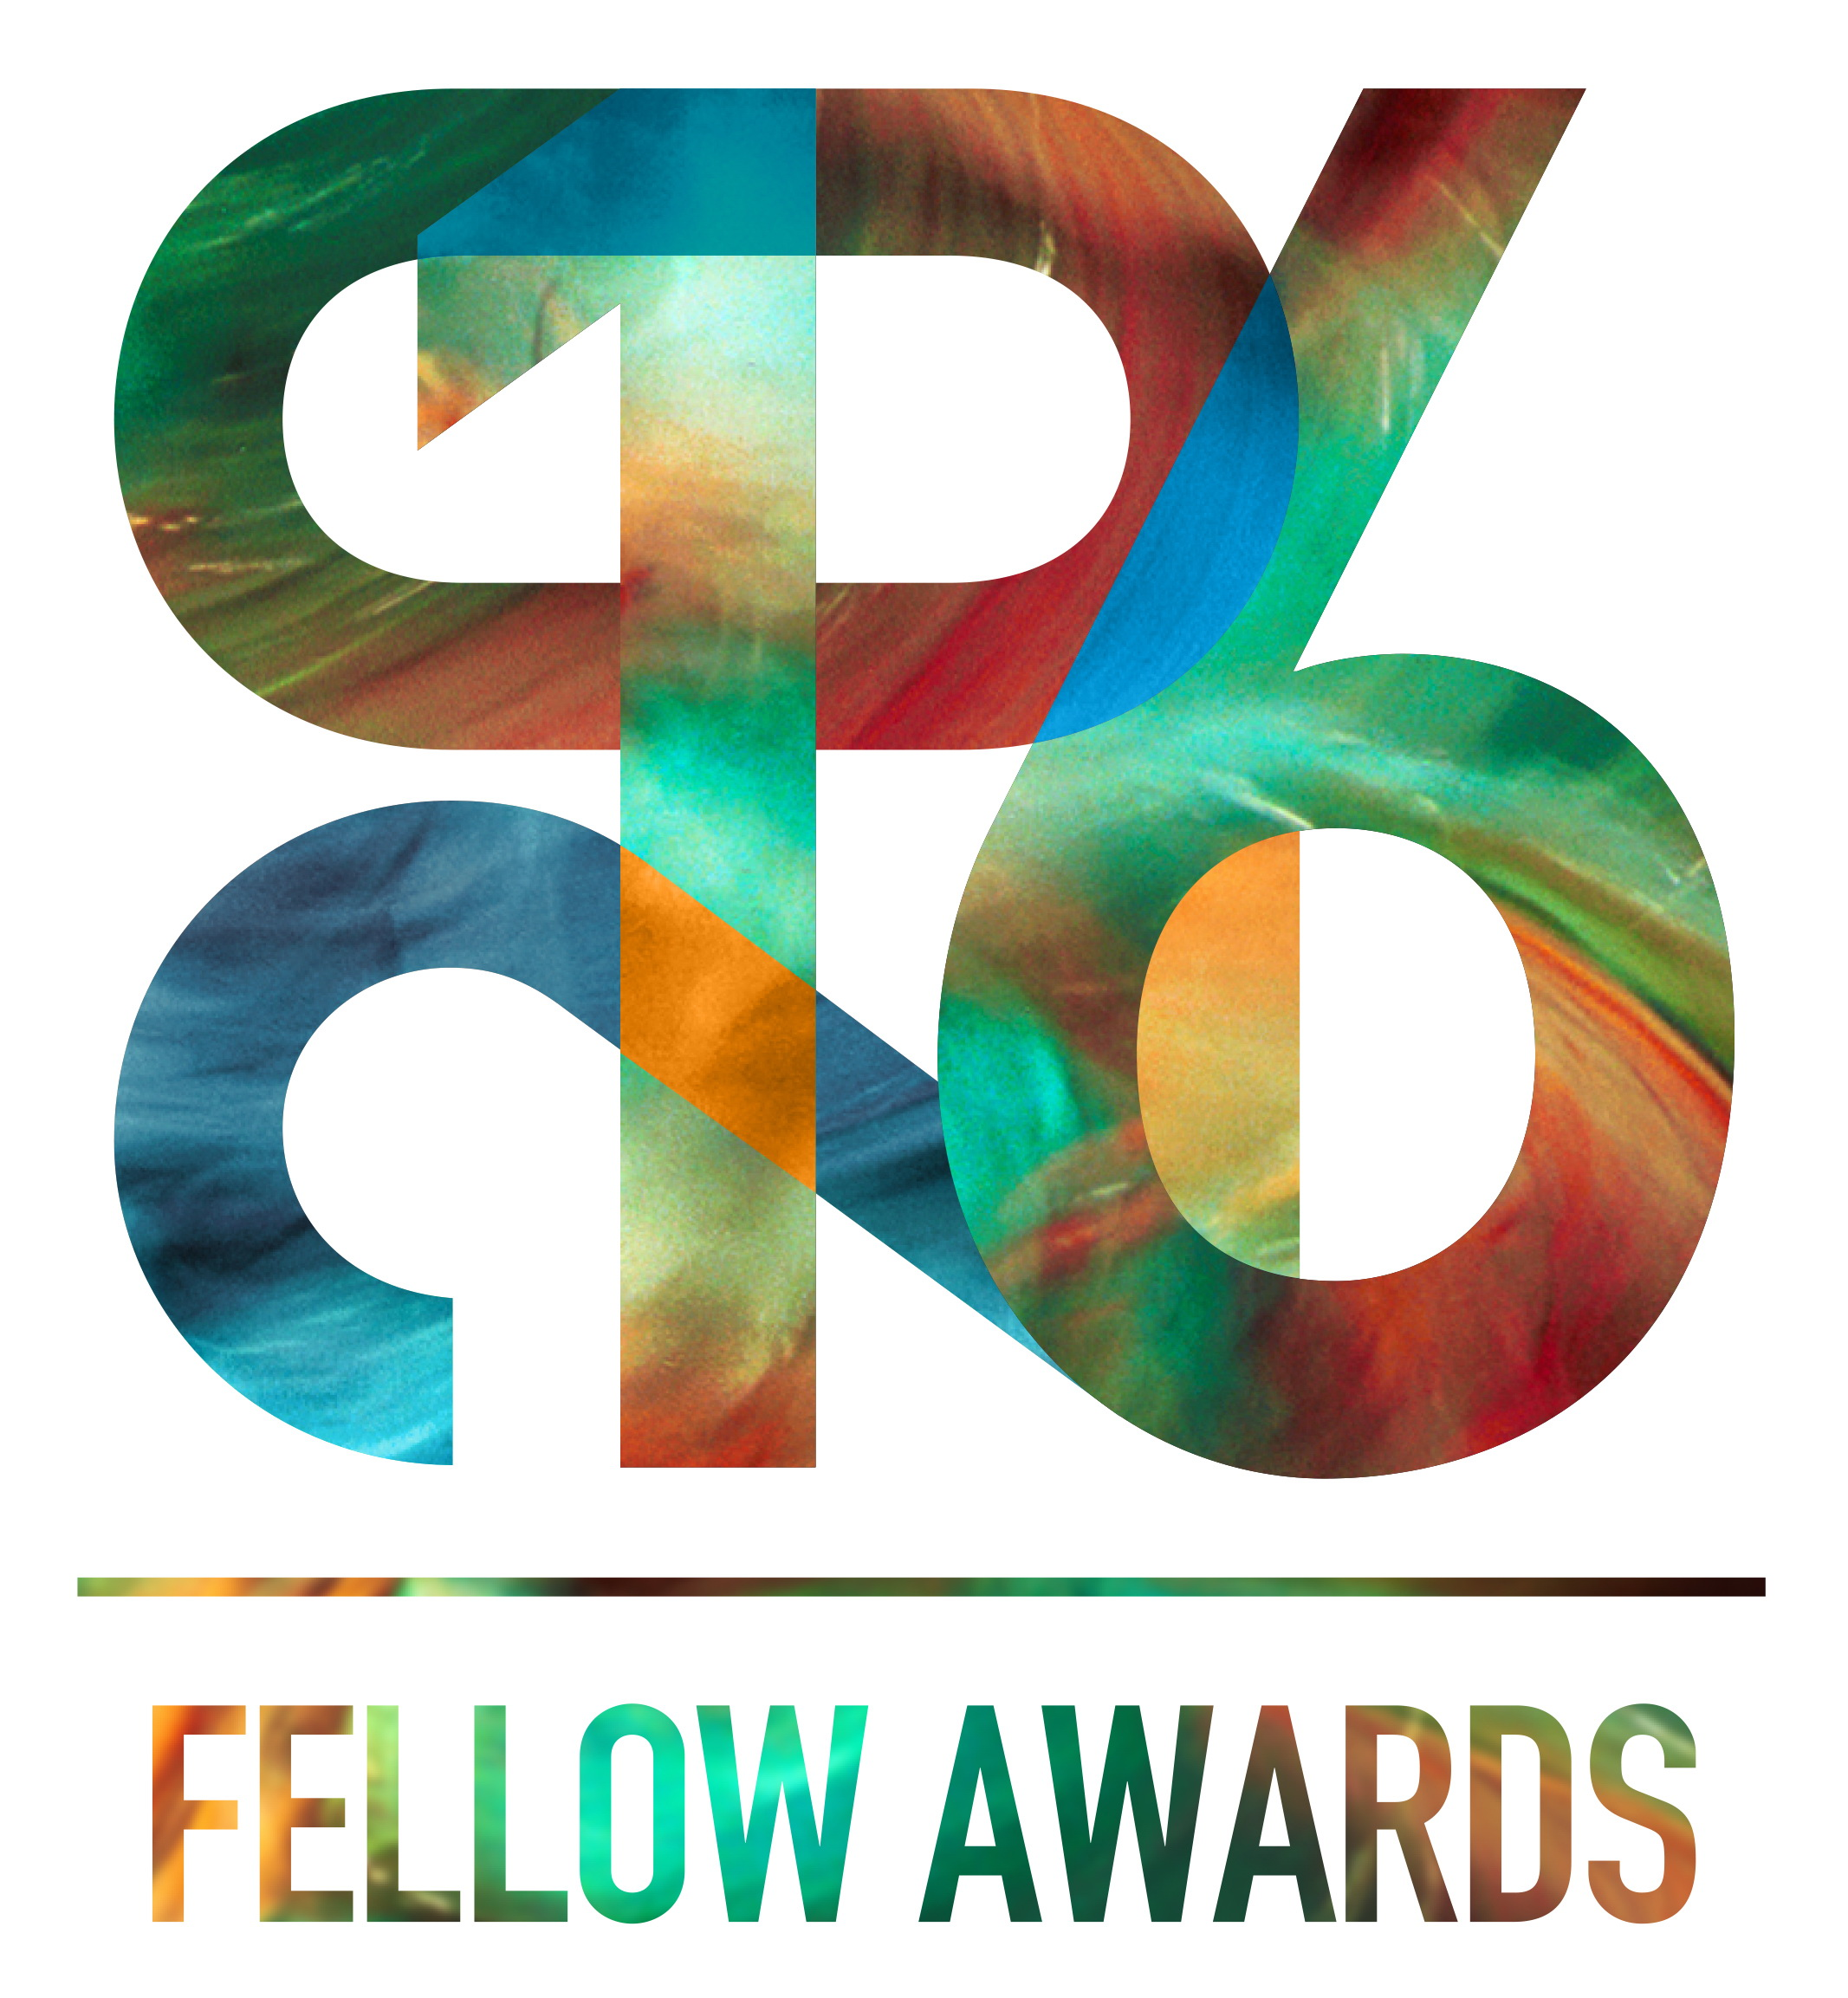 Fellow Awards